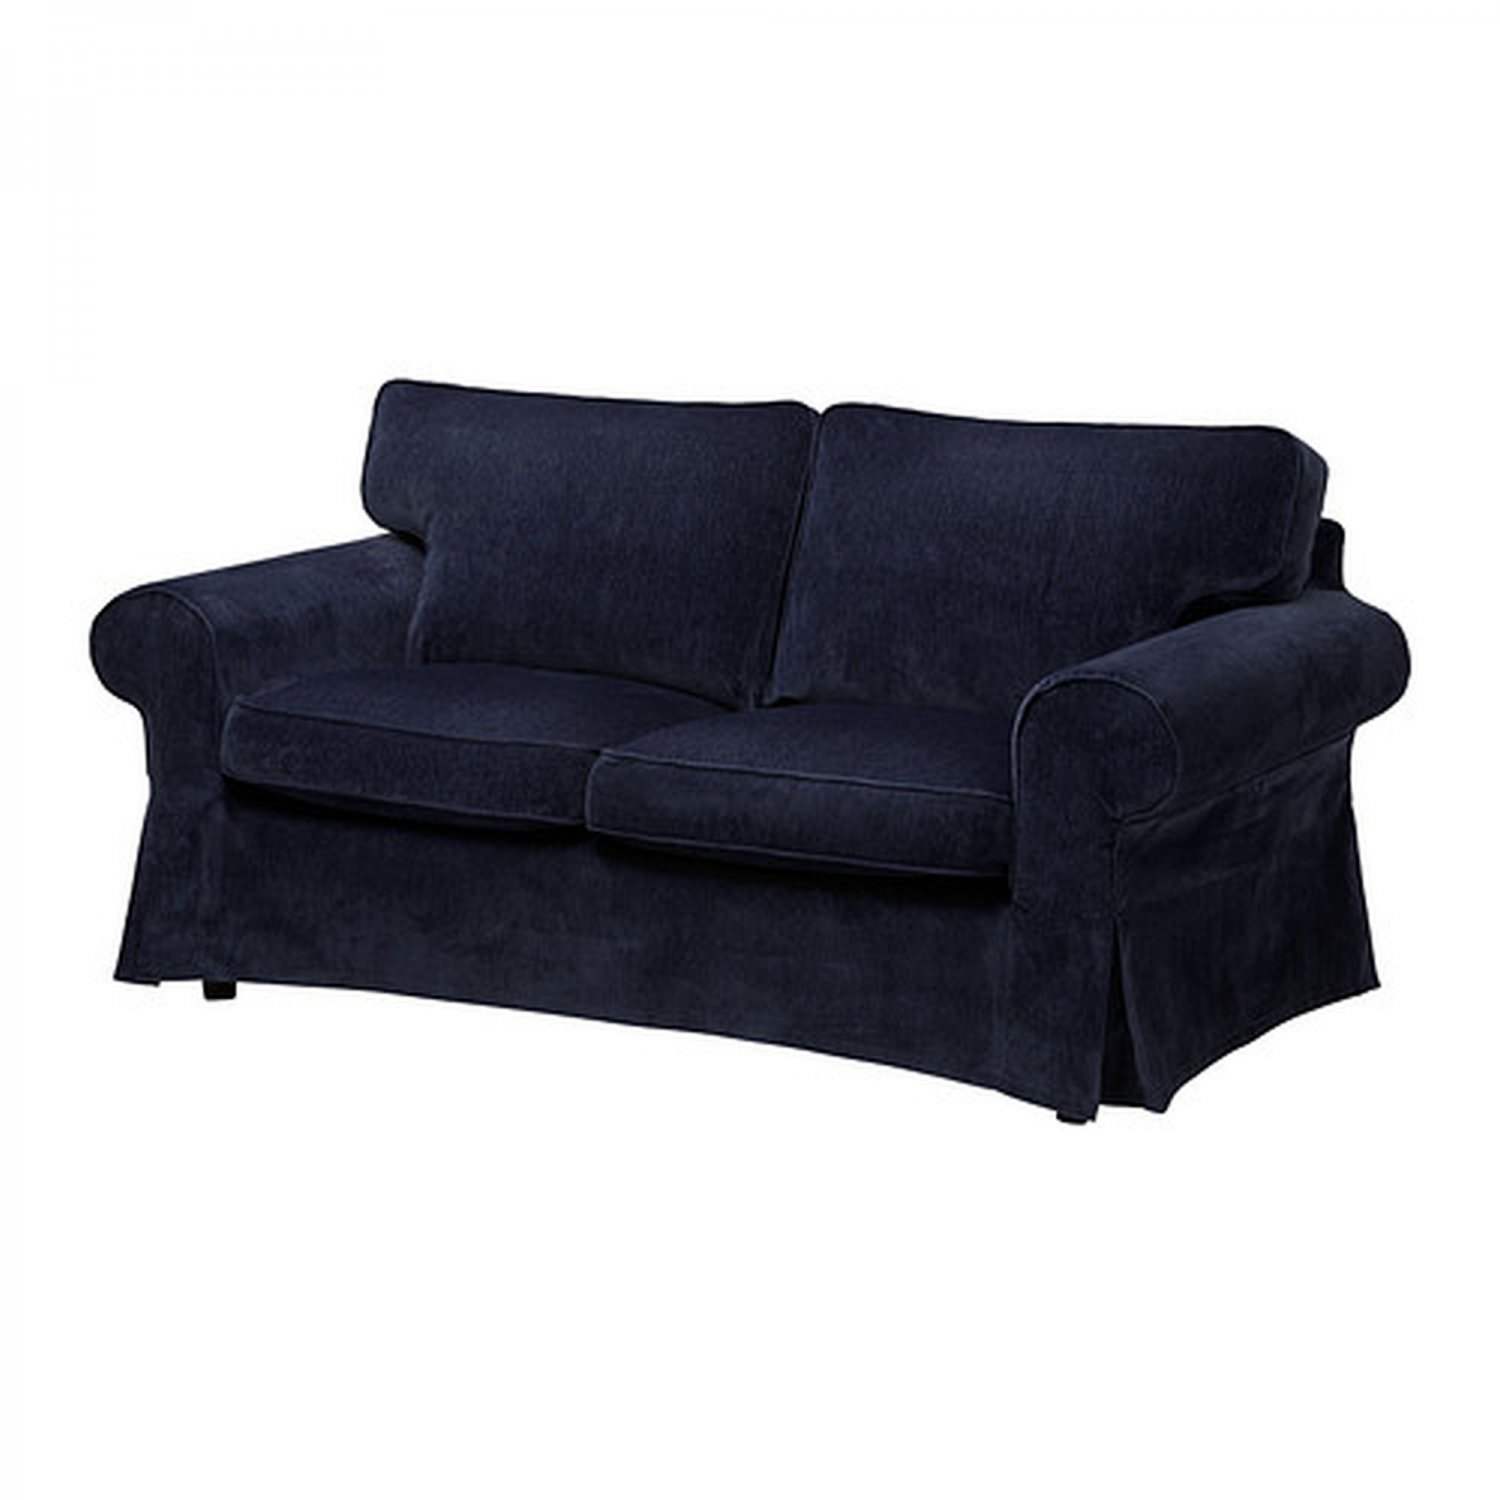 Ikea ektorp 2 seat sofa slipcover loveseat cover vellinge dark blue Blue loveseat slipcover